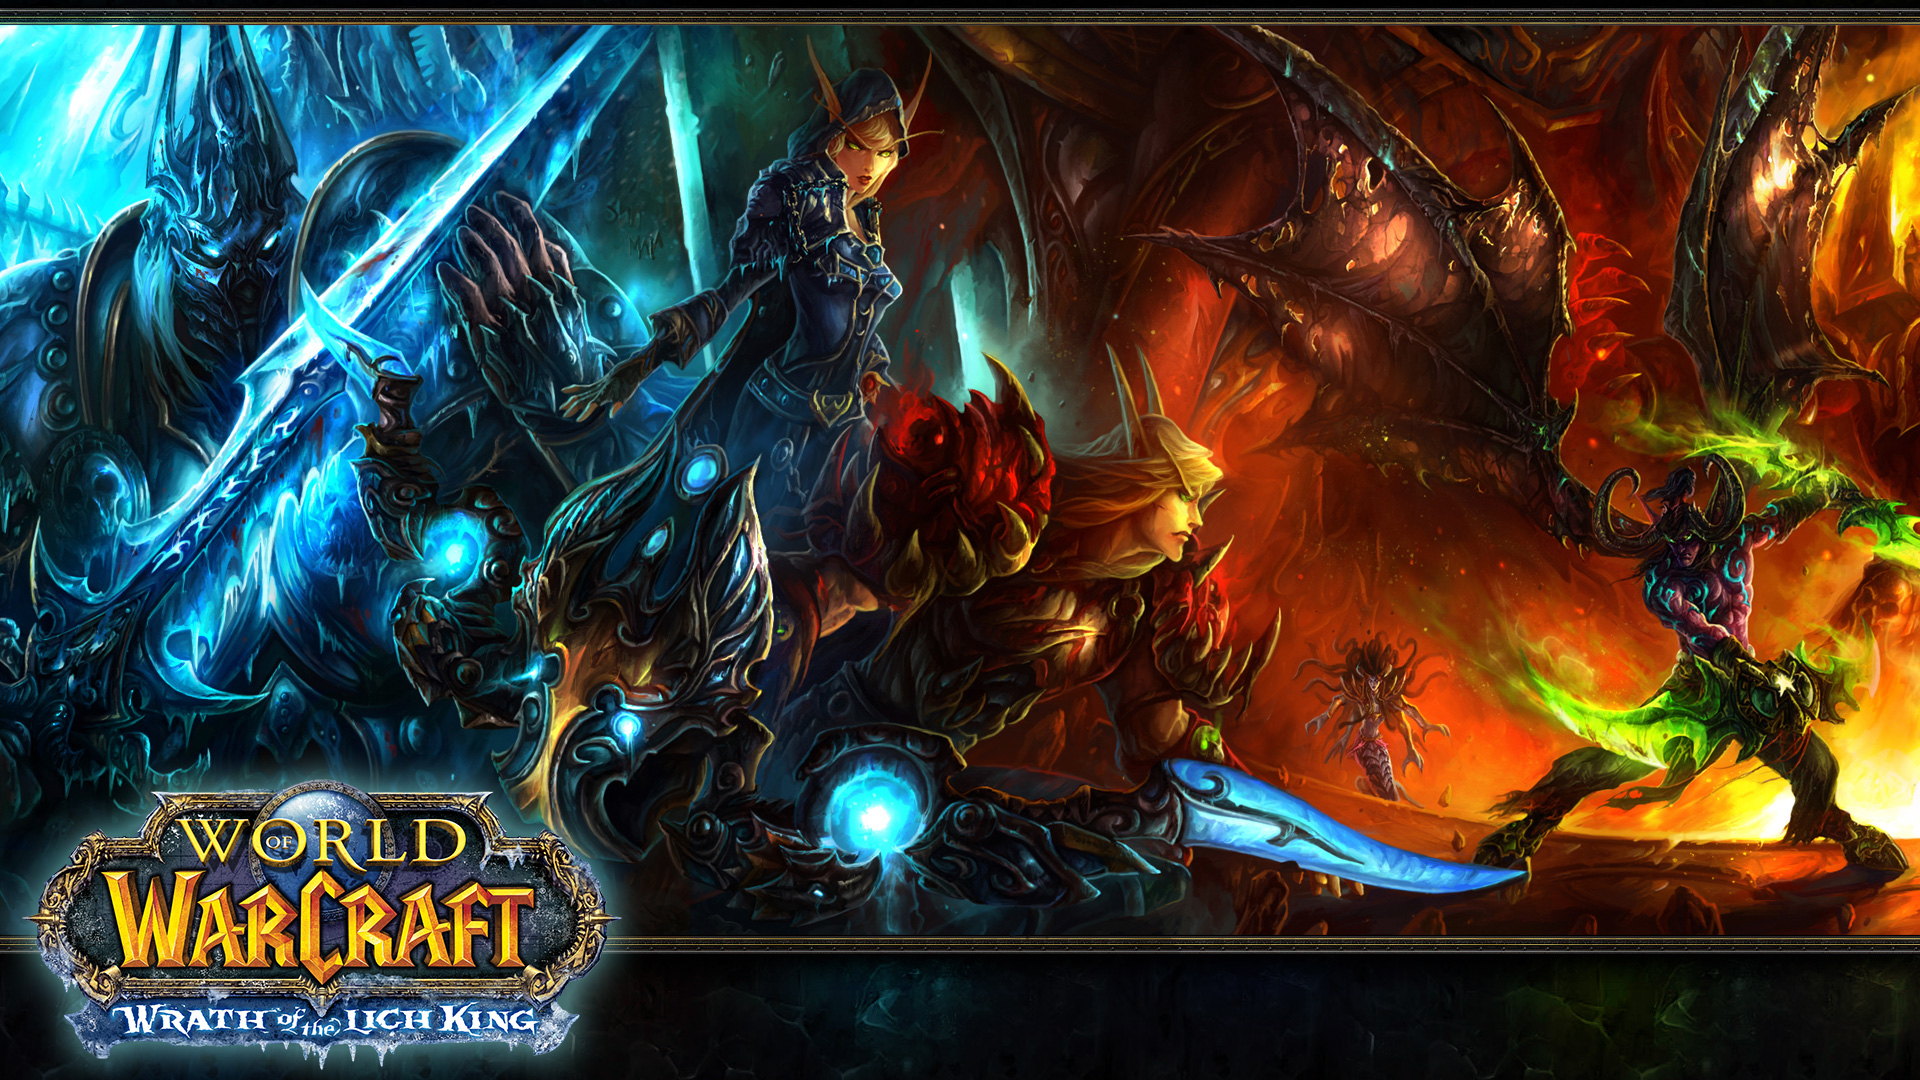 World of Warcraft Wrath of the Lich King wallpaper   135766 1920x1080